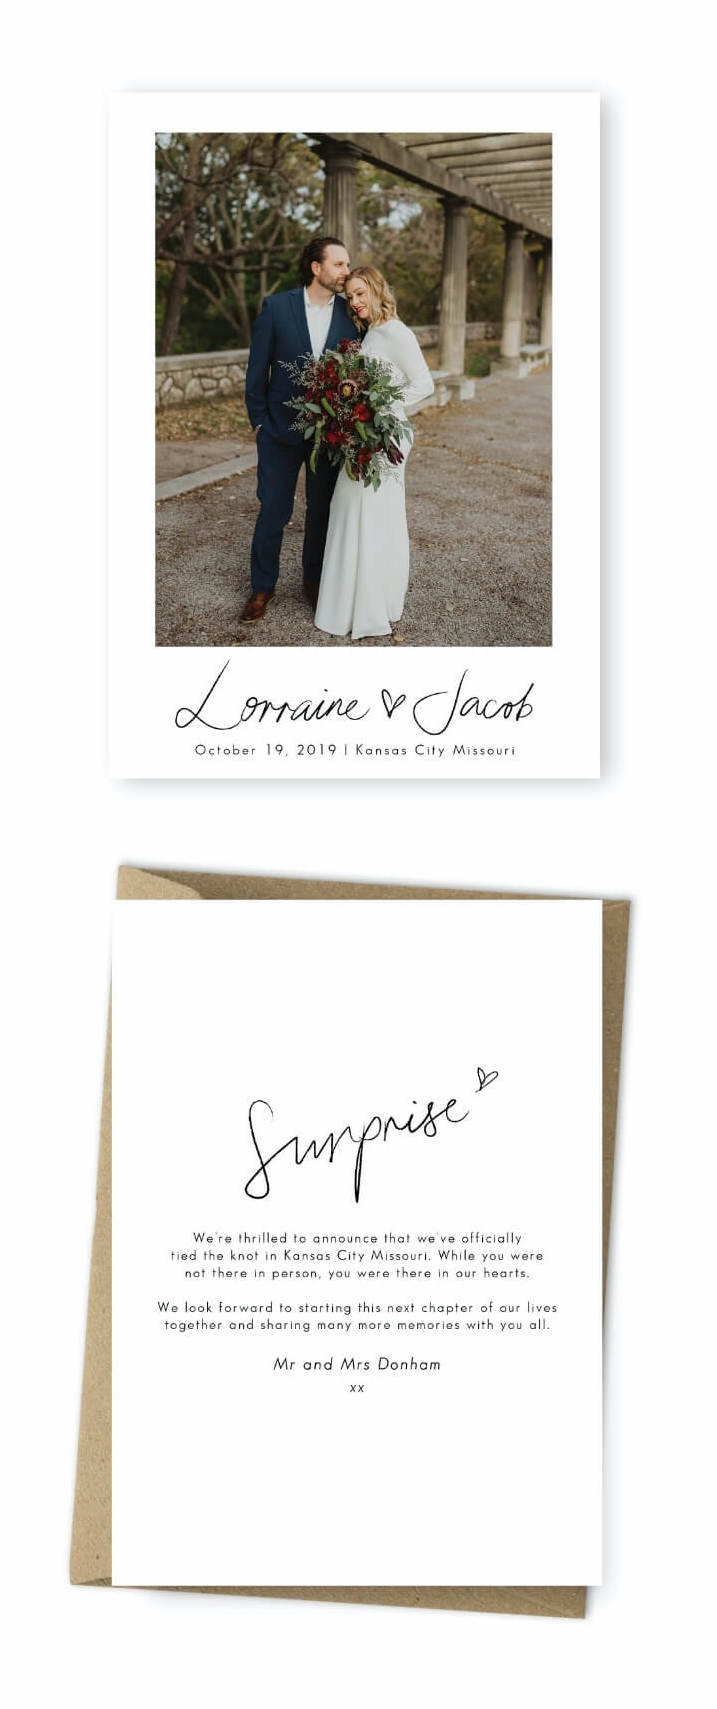 Wedding Announcement Verbiage Ideas Morgan Barrett Photography For the Love of Stationery